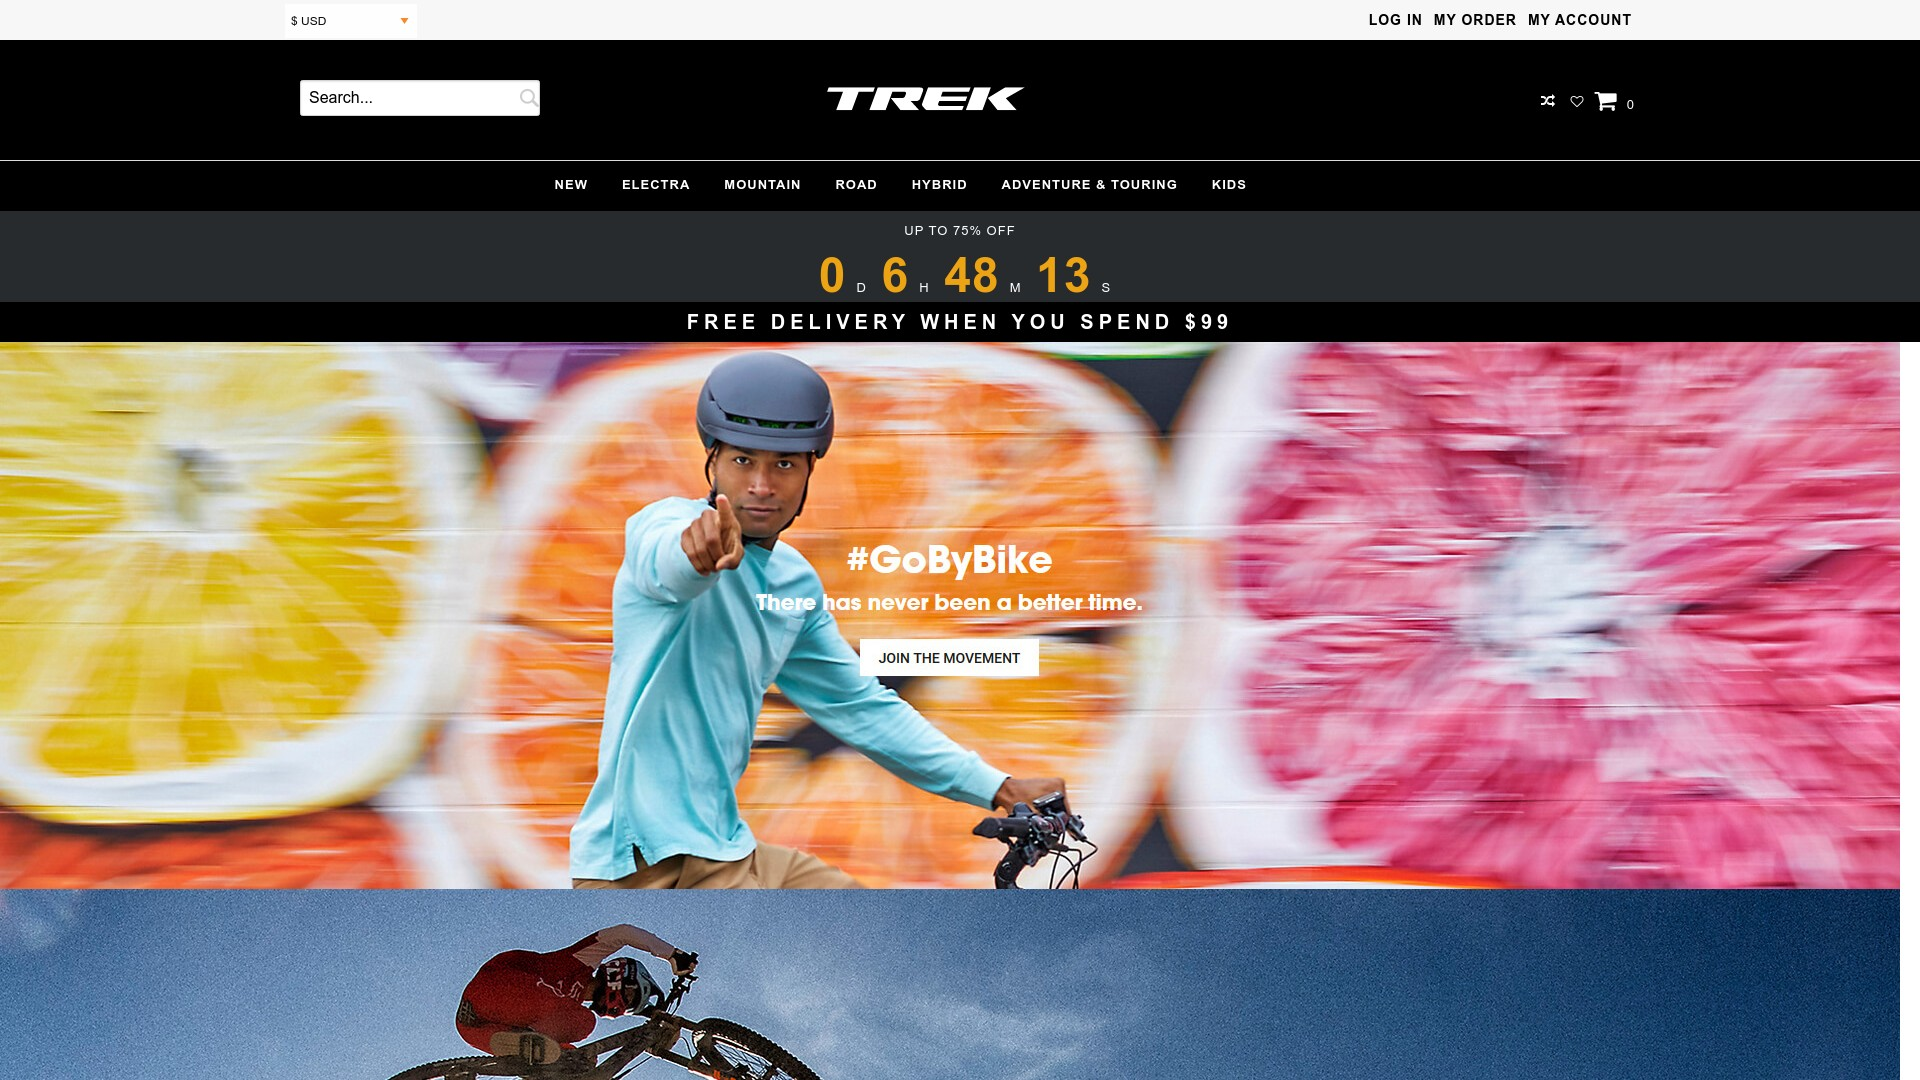 Is Teckybike-shop a Scam? Review of the Online Store